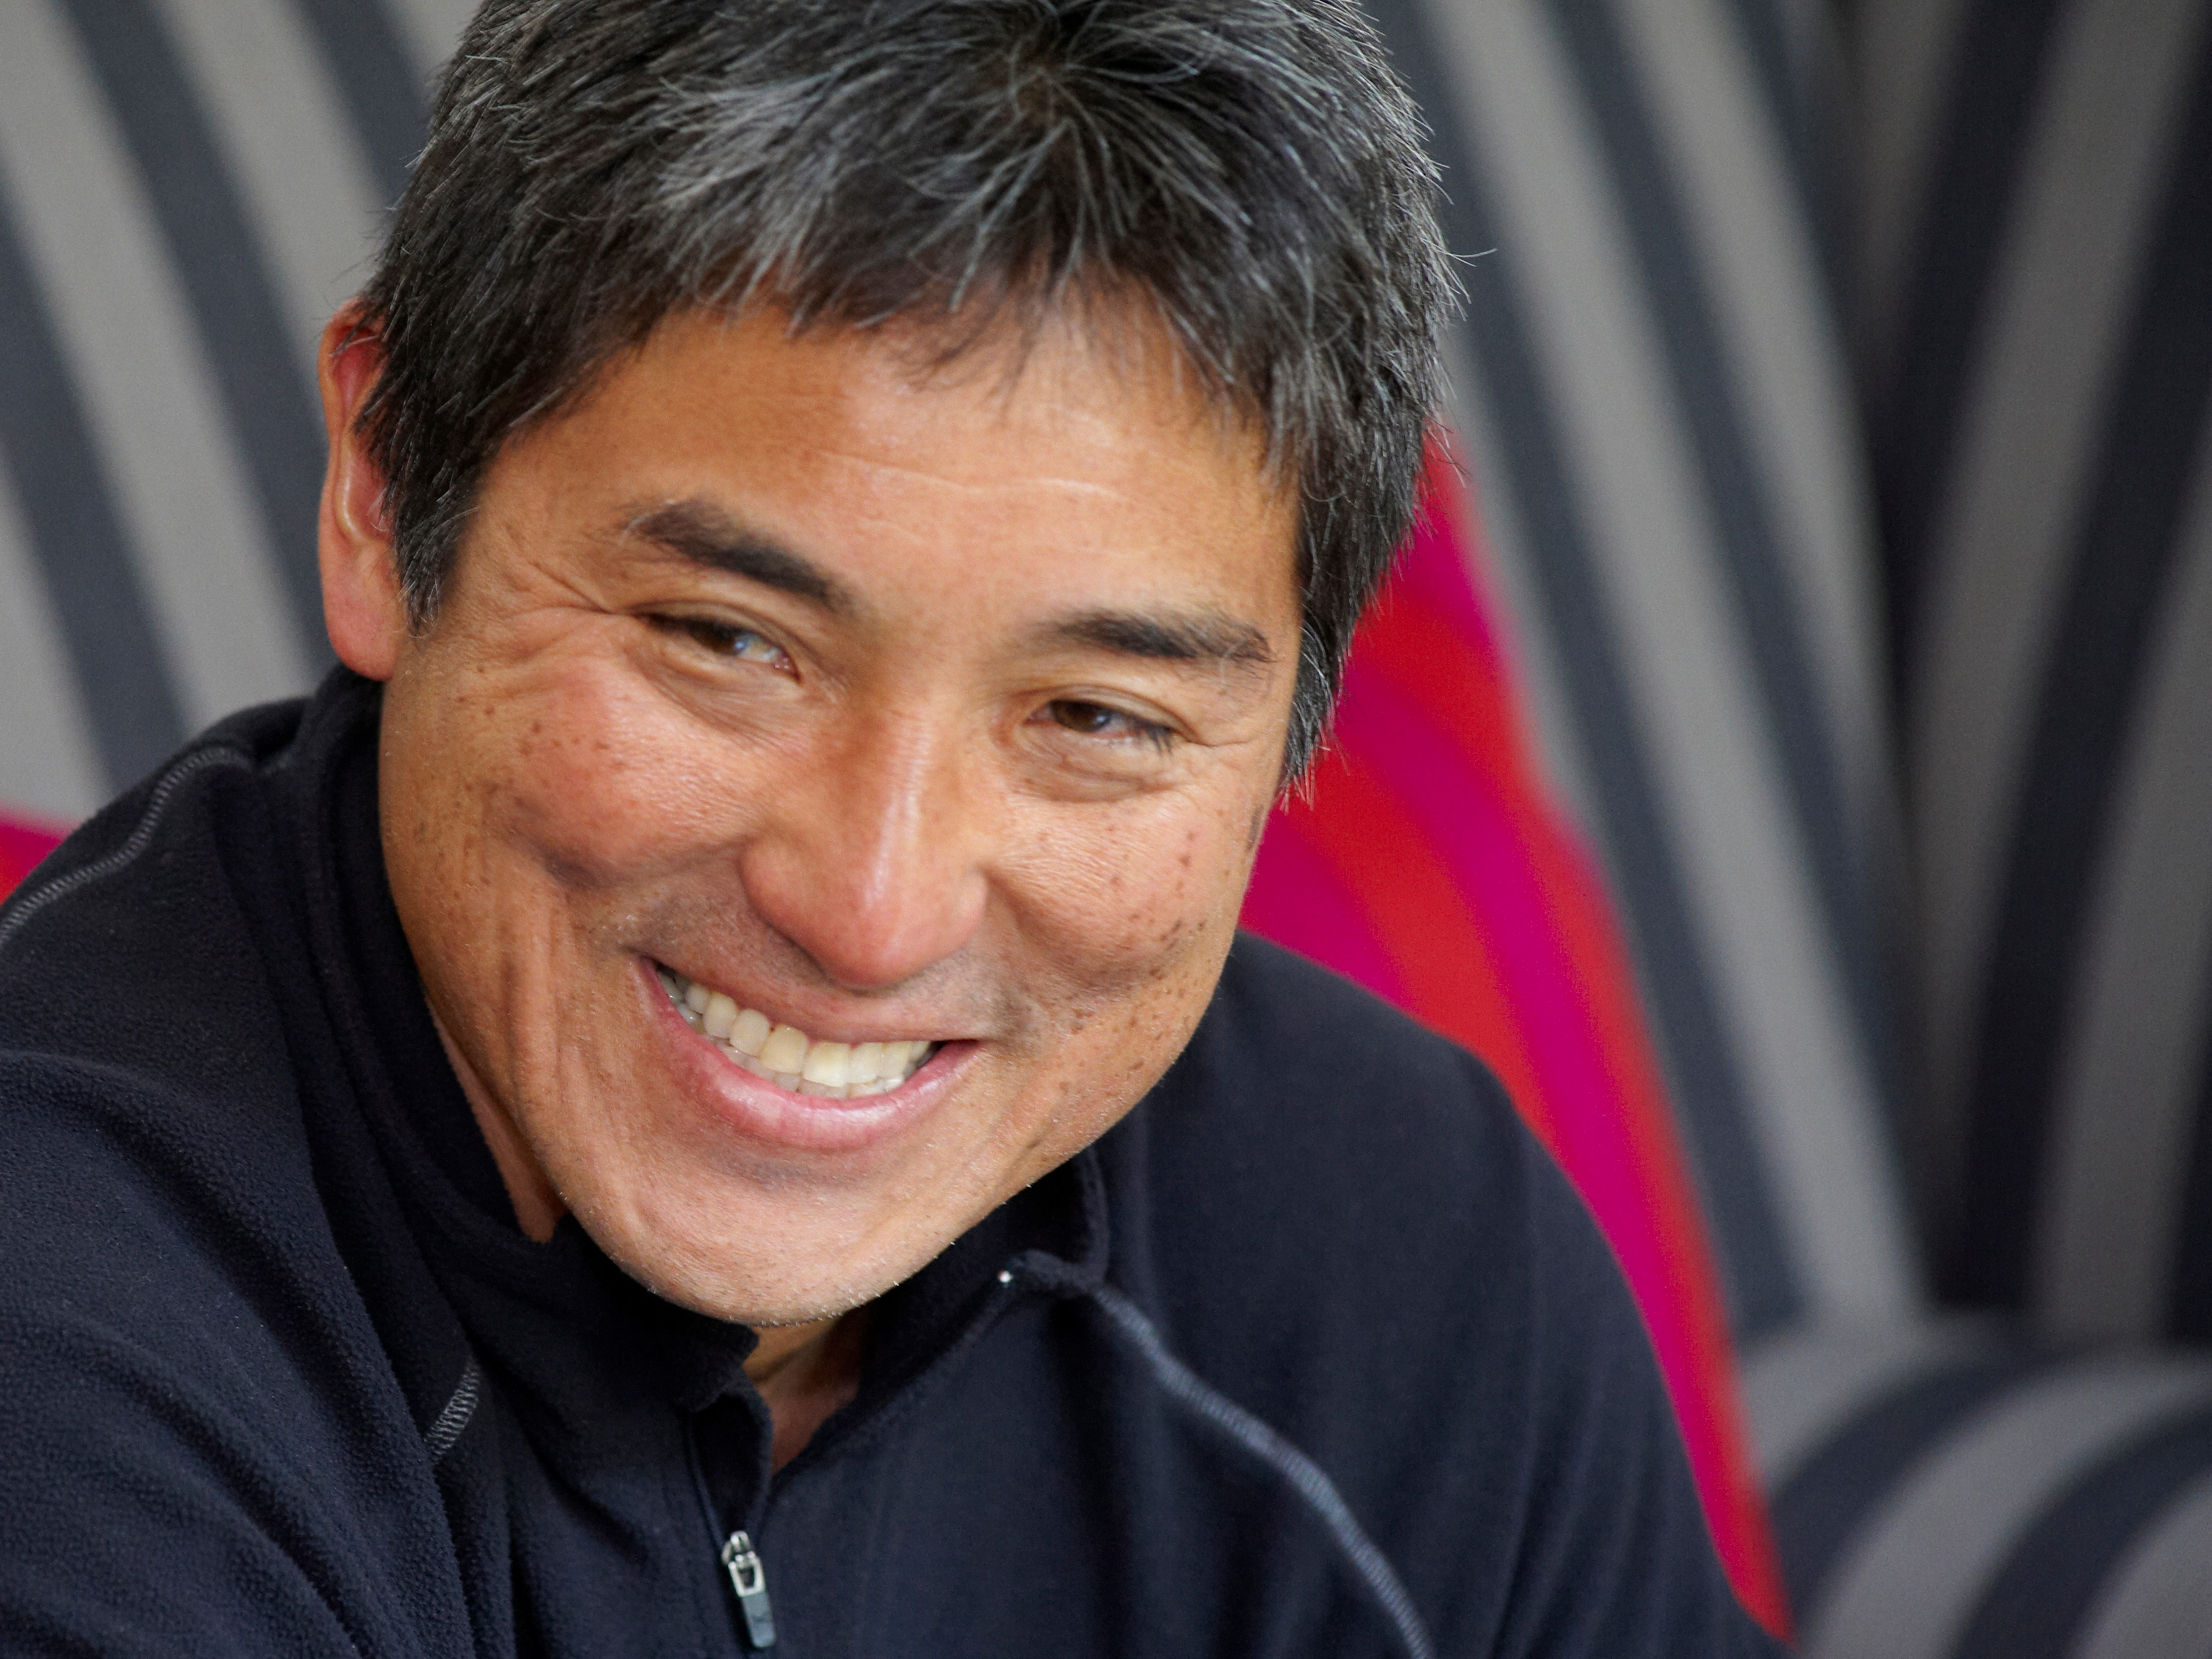 The 62-year old son of father (?) and mother(?), 153 cm tall Guy Kawasaki in 2017 photo